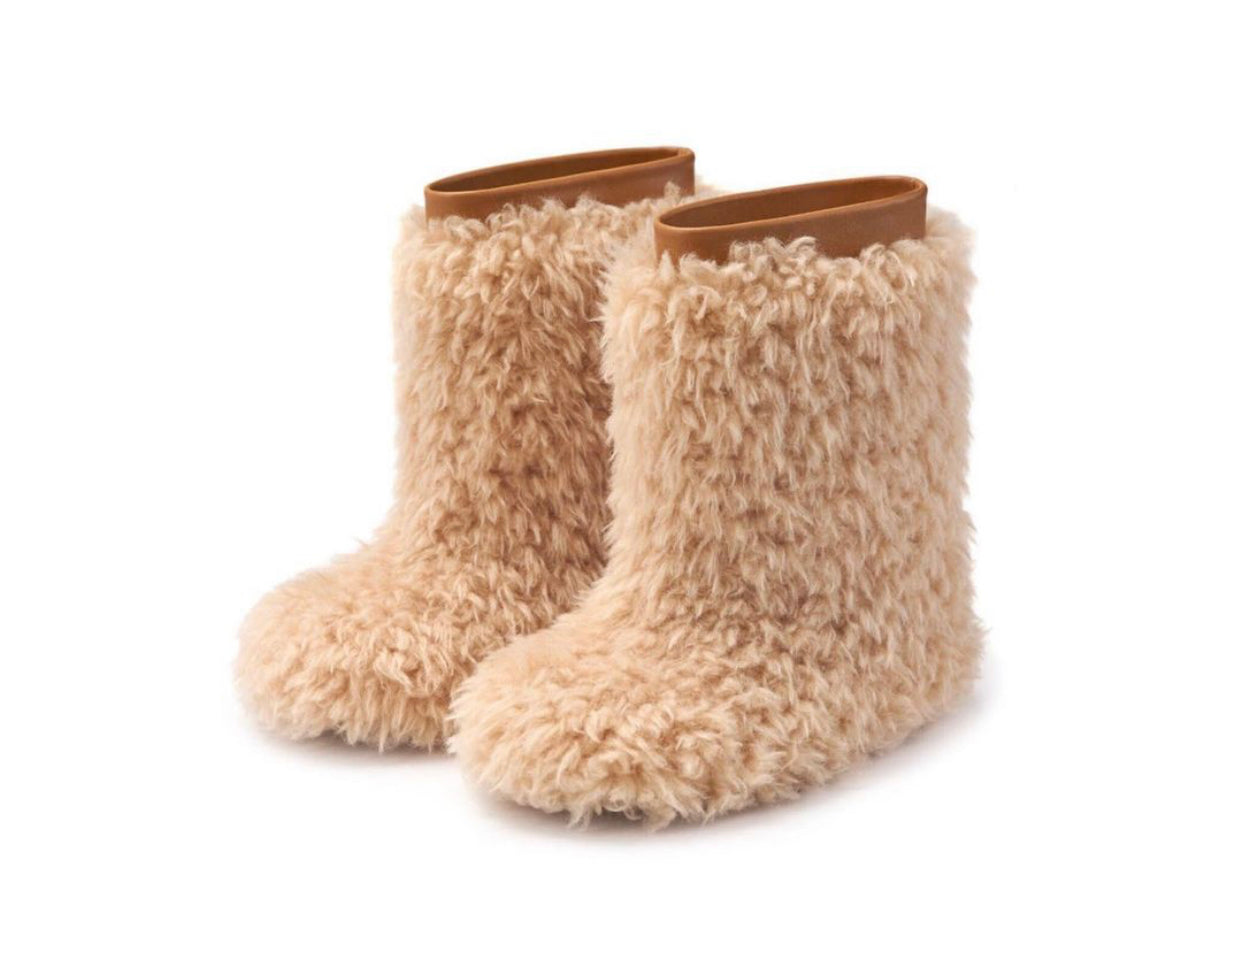 Age of Innocence YETI boots in Beige